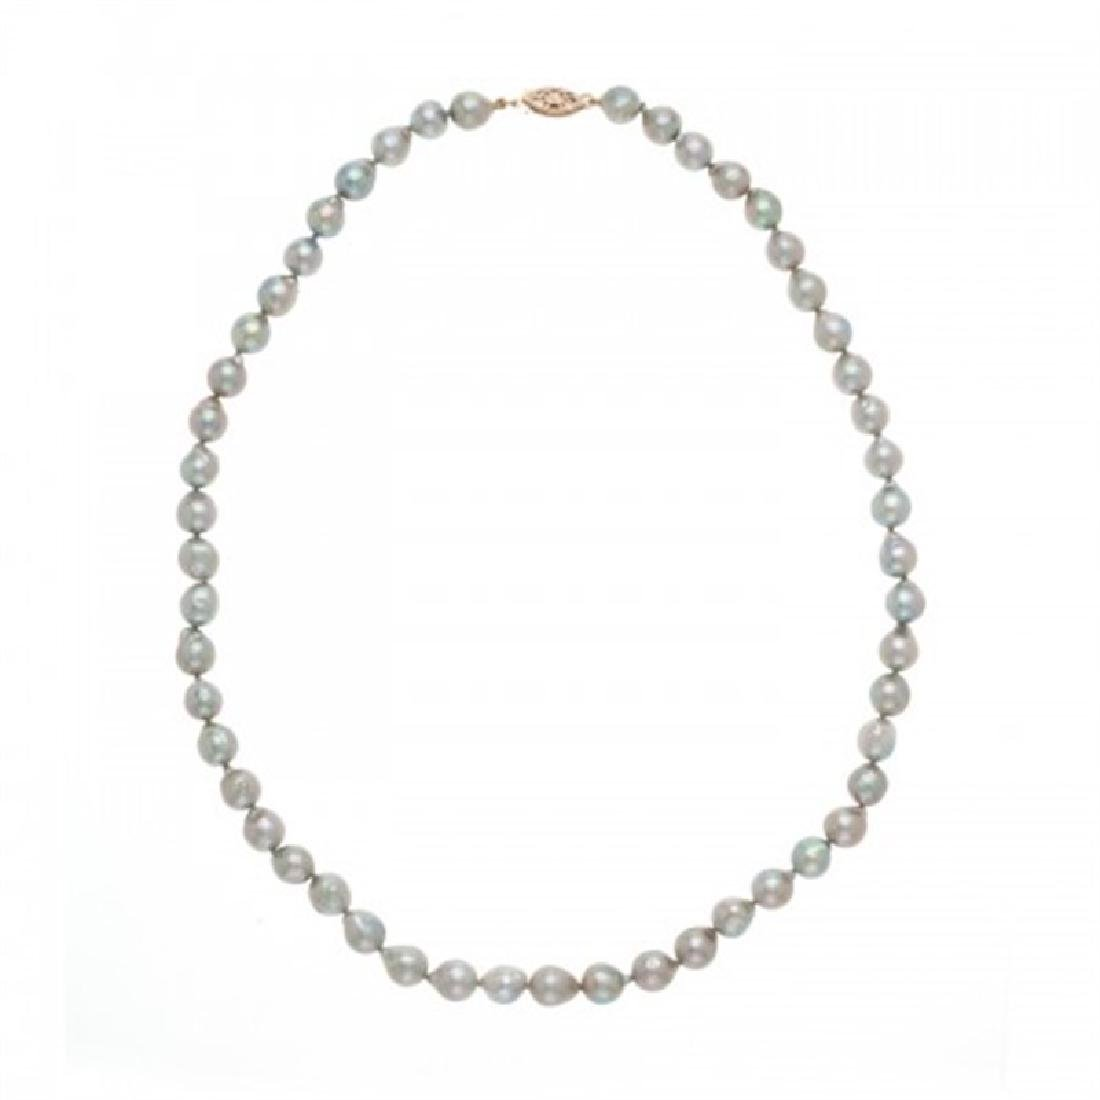 7.0-7.5mm Akoya Baroque Grey Pearl Necklace